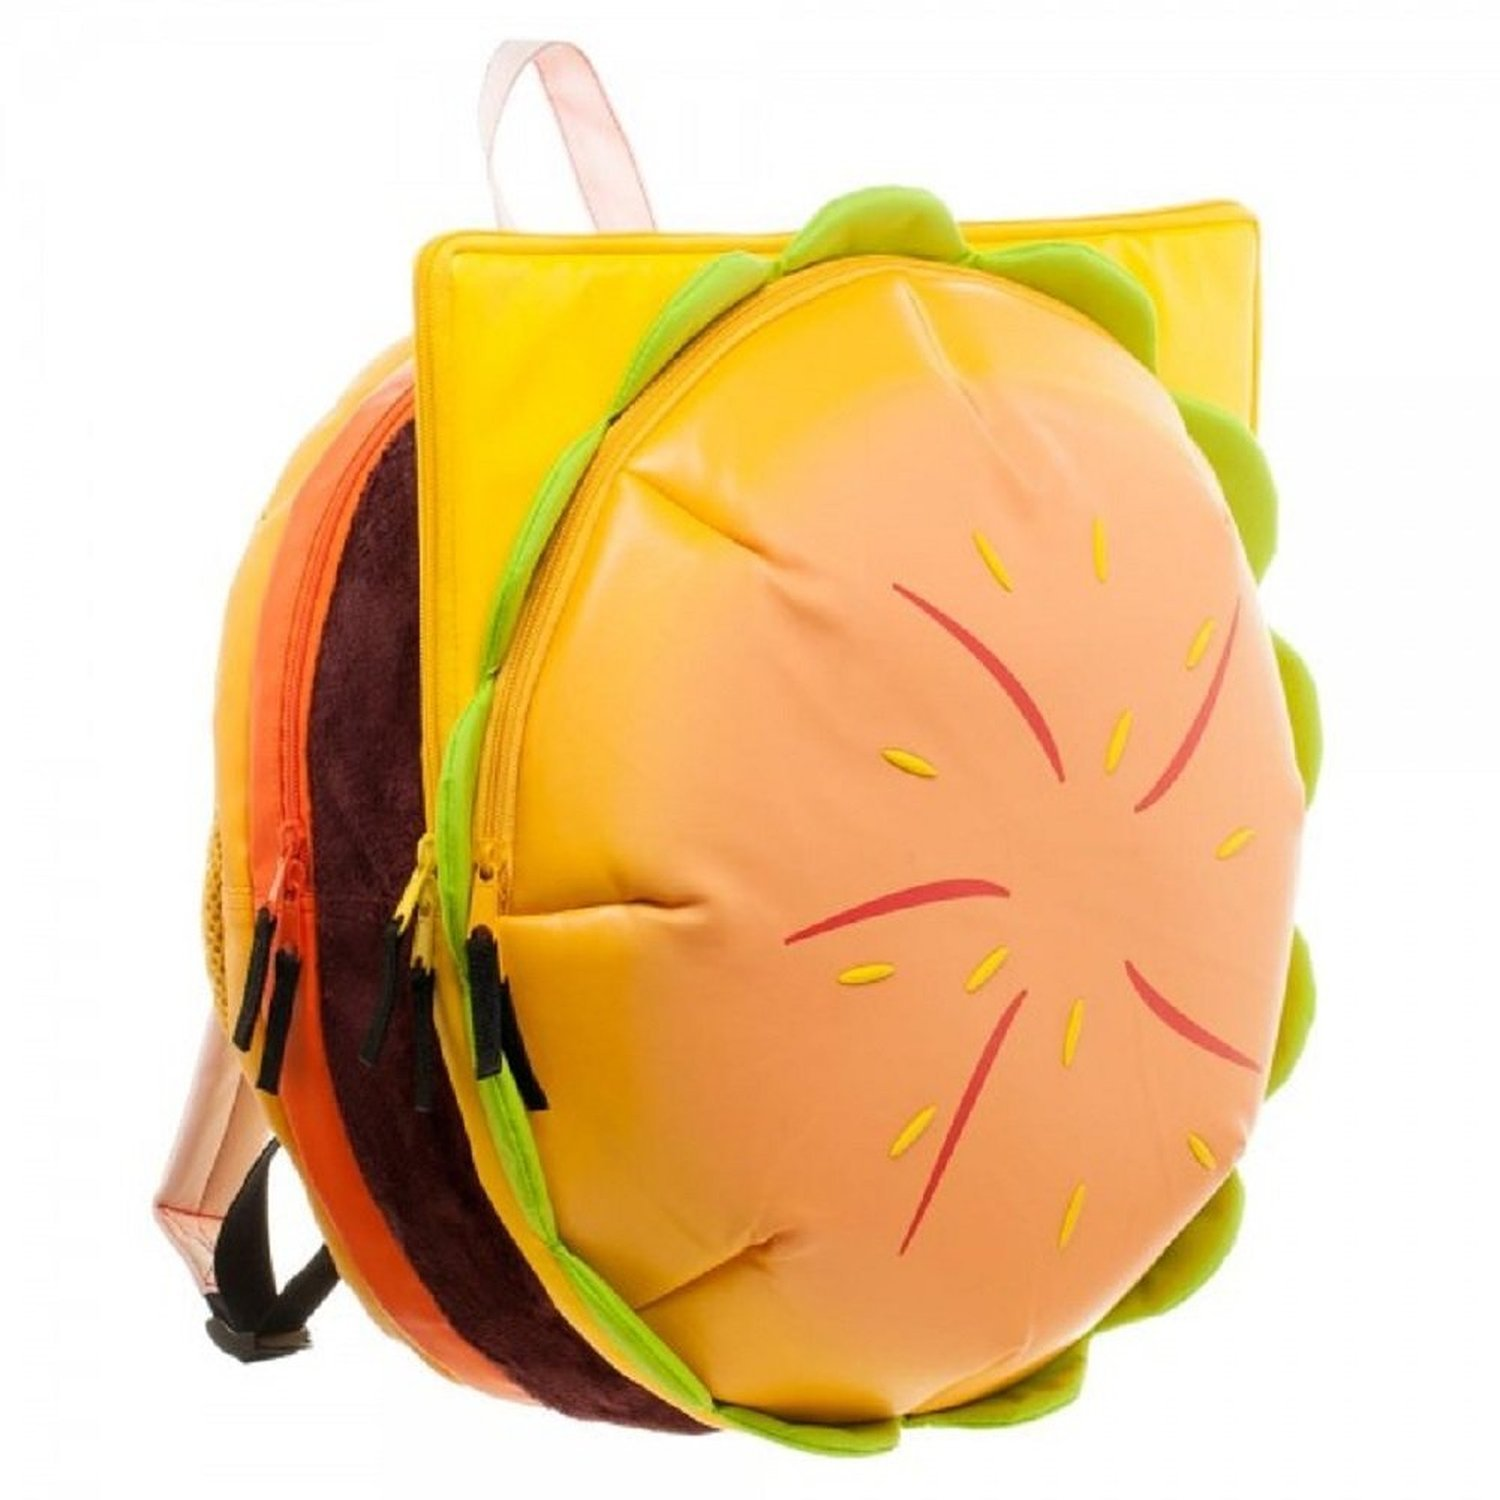 Details about Cartoon Network Steven Universe Cheeseburger  Backpack e87c2b54ee3a6